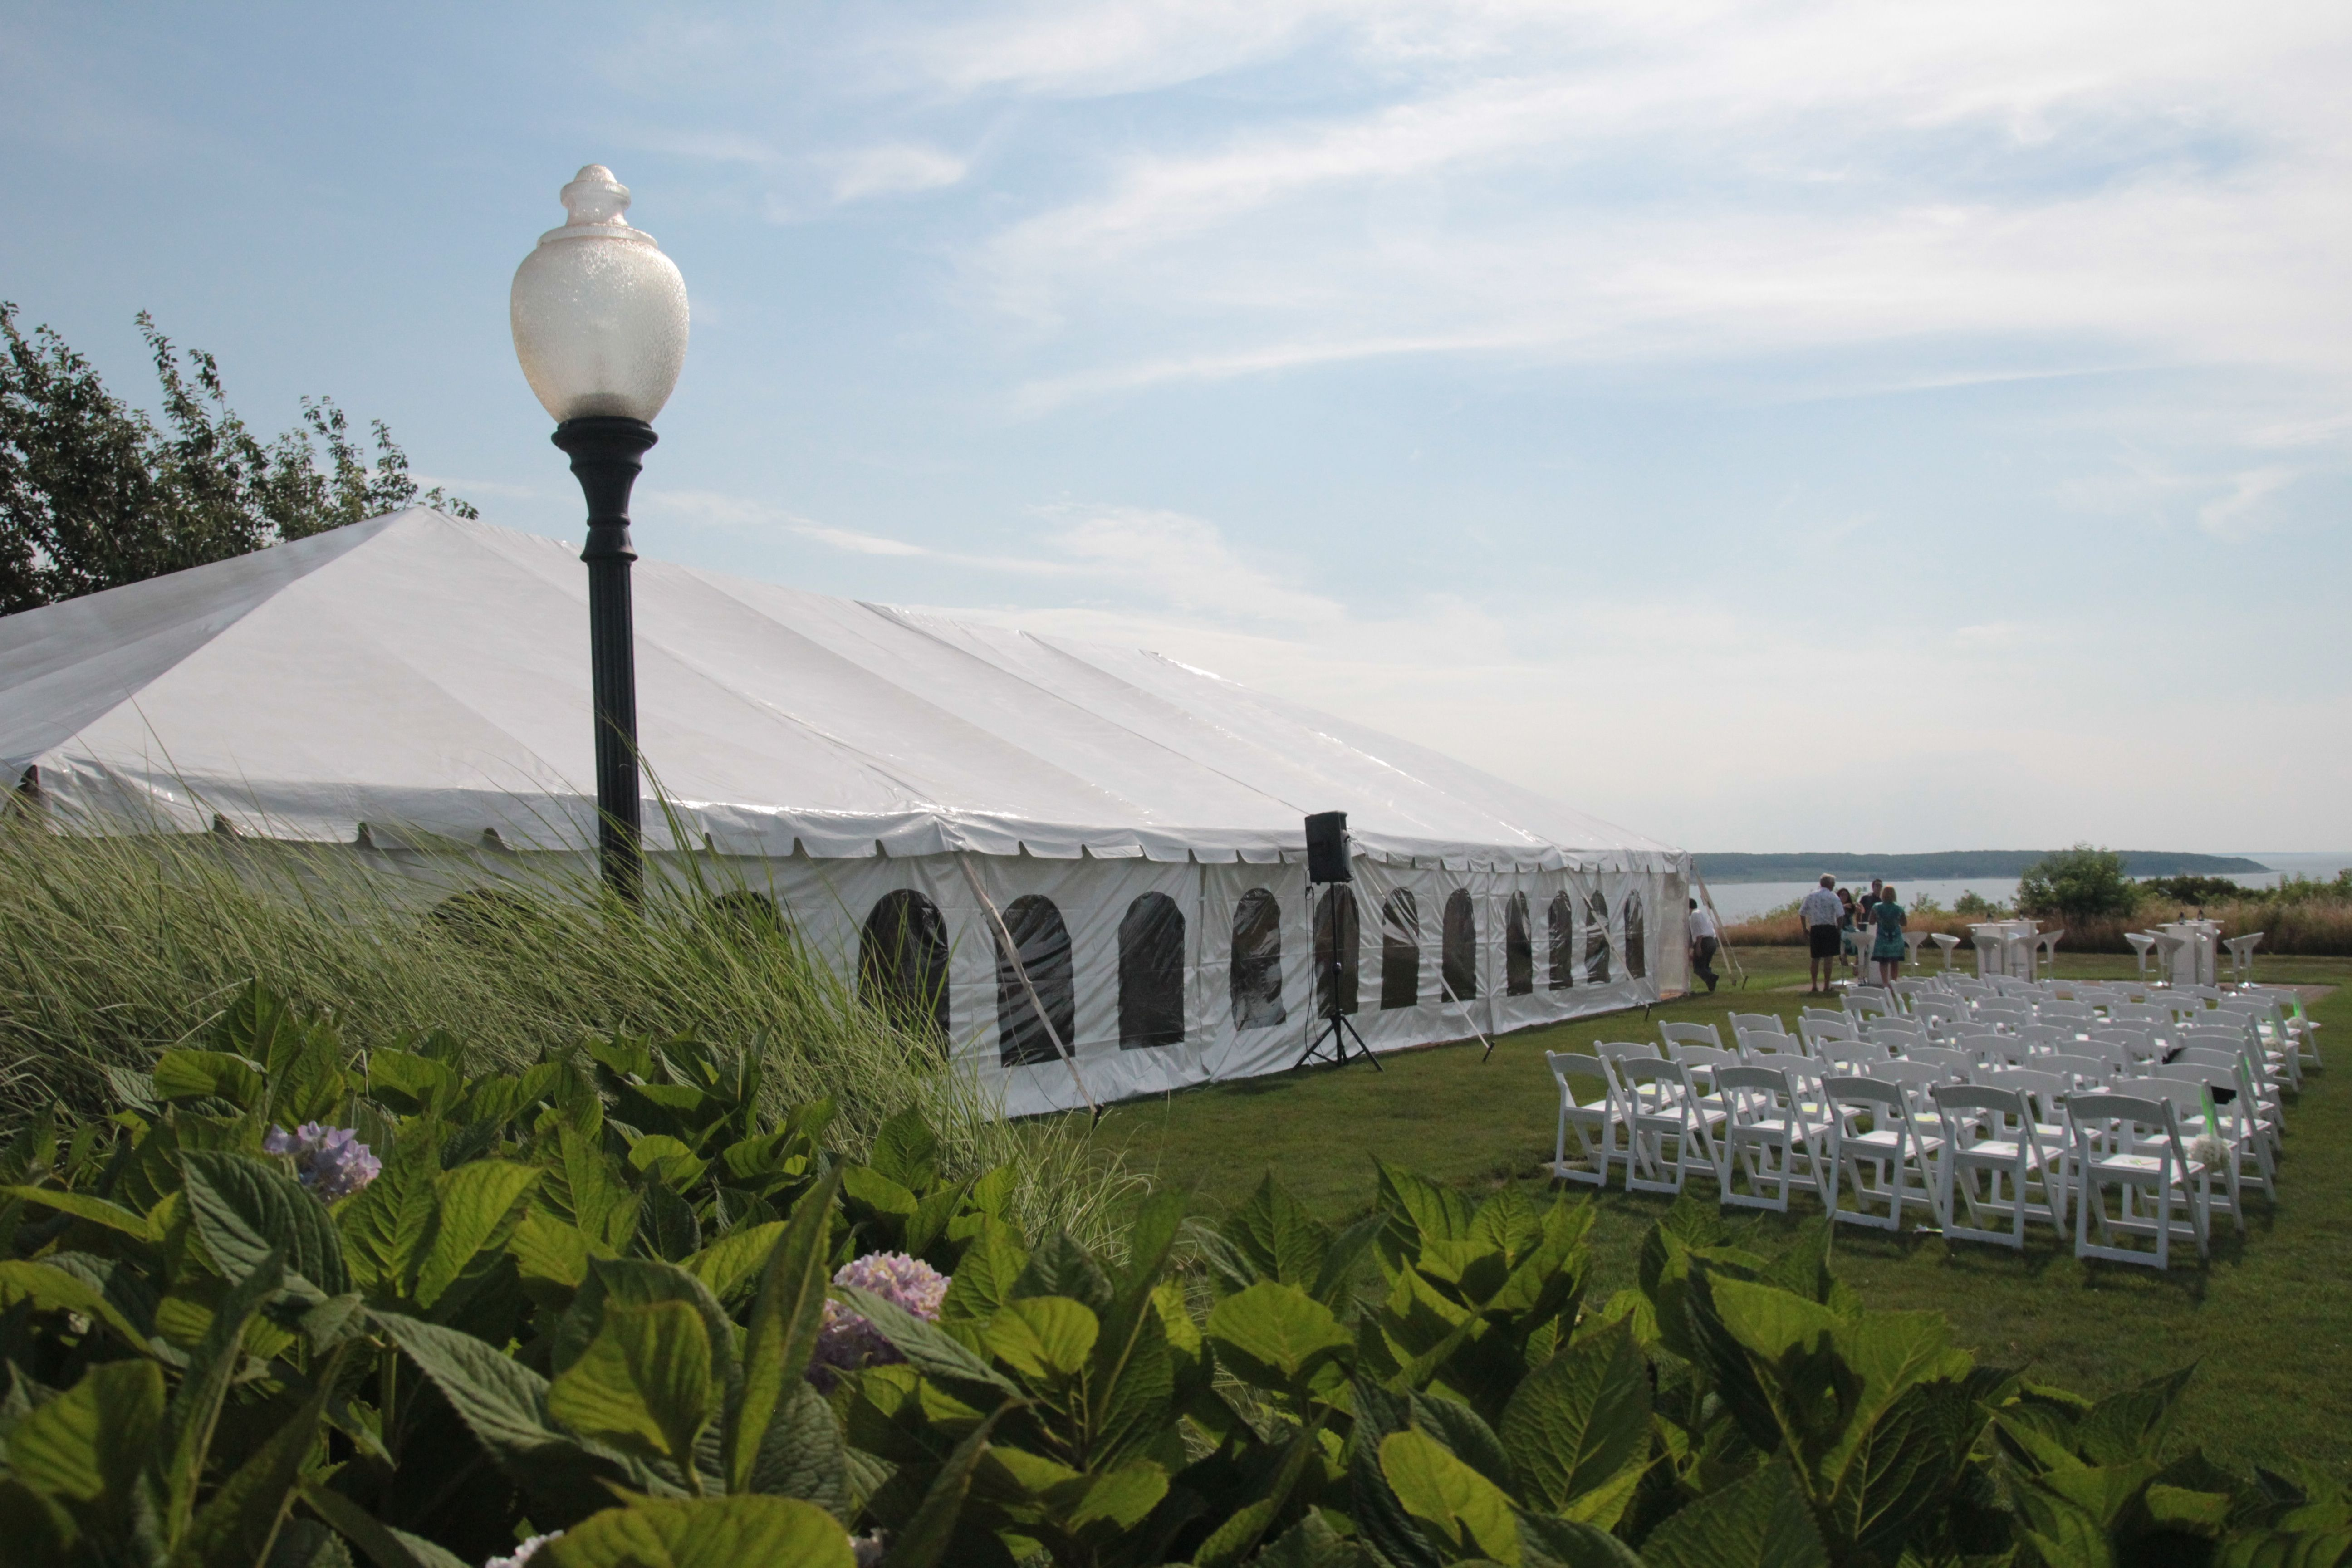 40 x 80 frame tent with window tent side walls was put